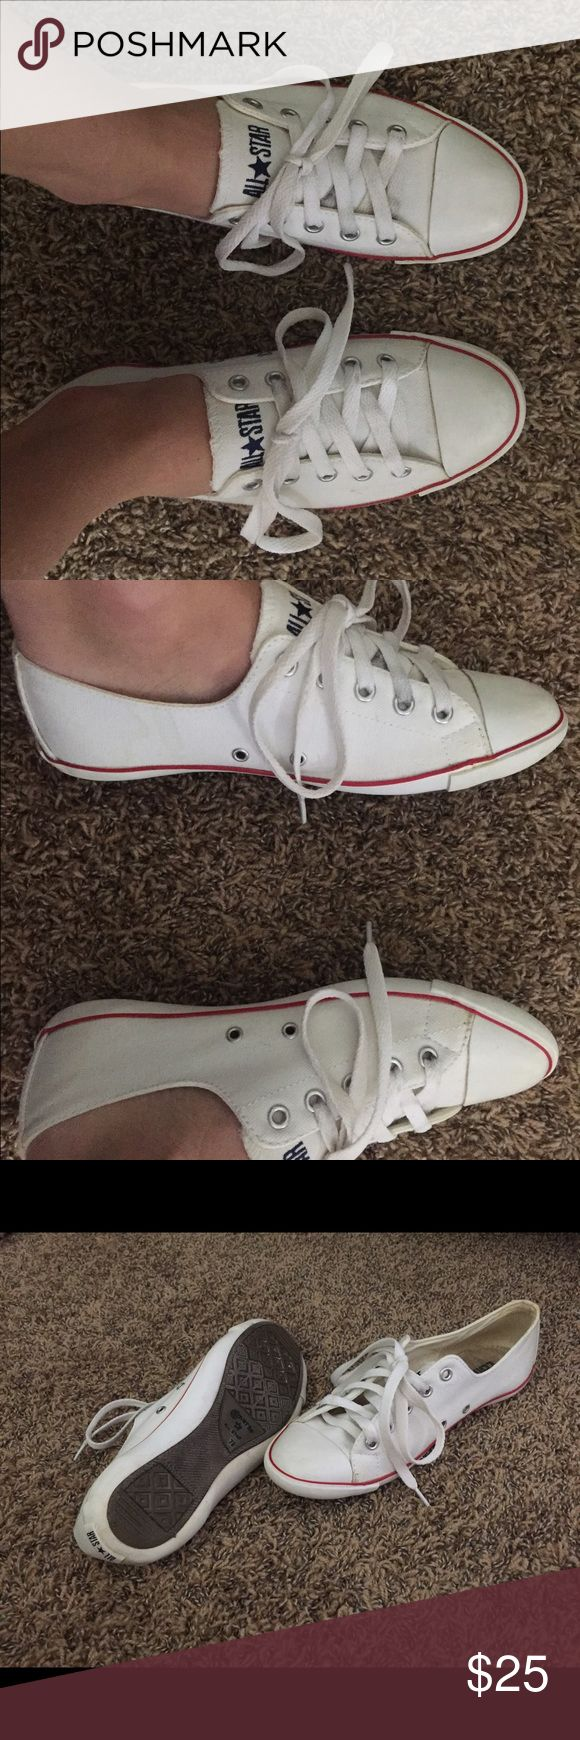 Converse slim sole Super cute & comfy, can be worn with anything! Gently worn but still in good condition. Few spots but the great thing about these sneakers are that they can be thrown in the washer machine. Converse Shoes Sneakers